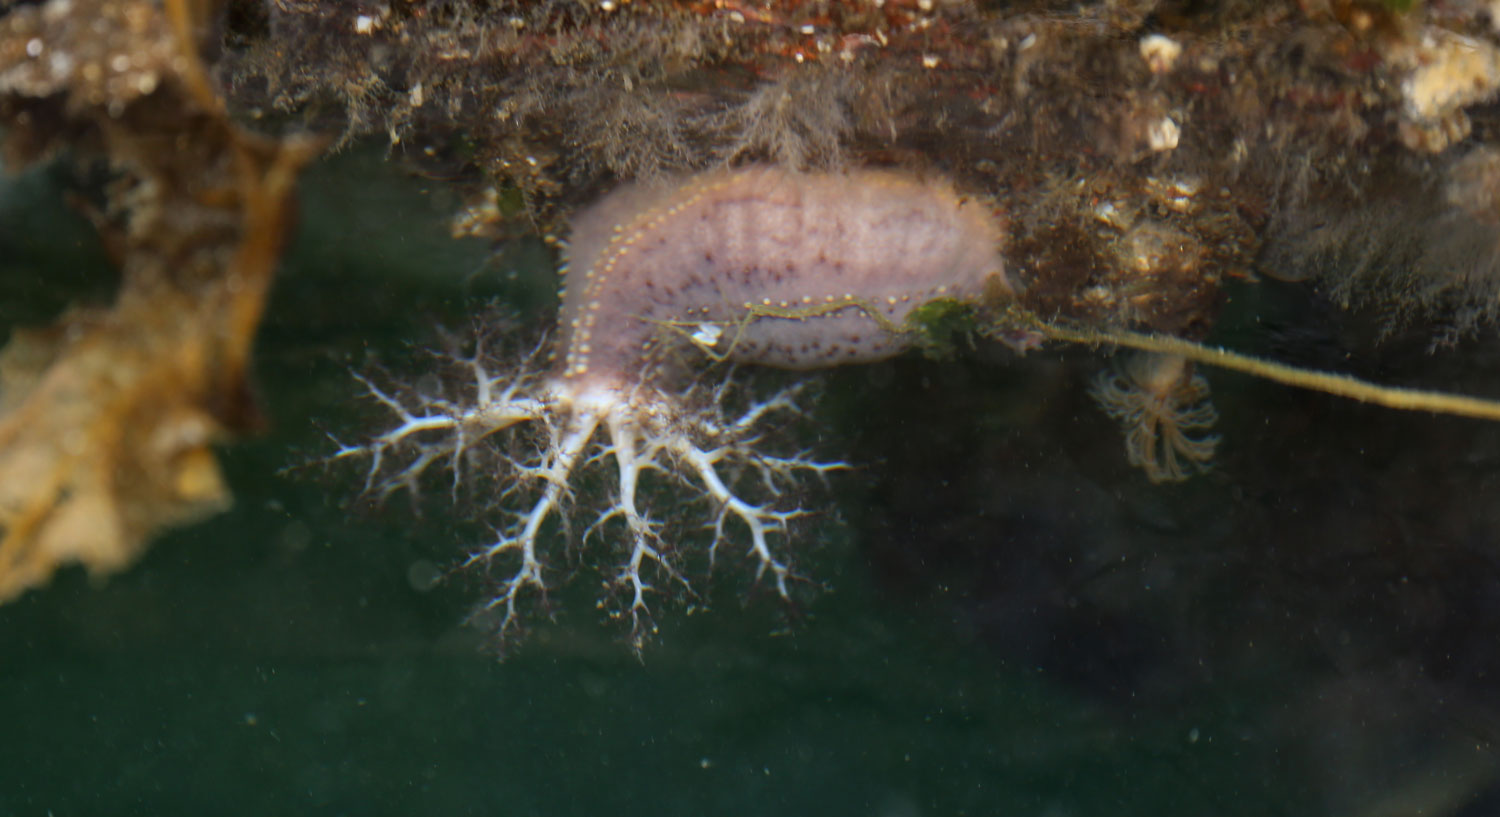 Sea cucumber with tentacles extended.